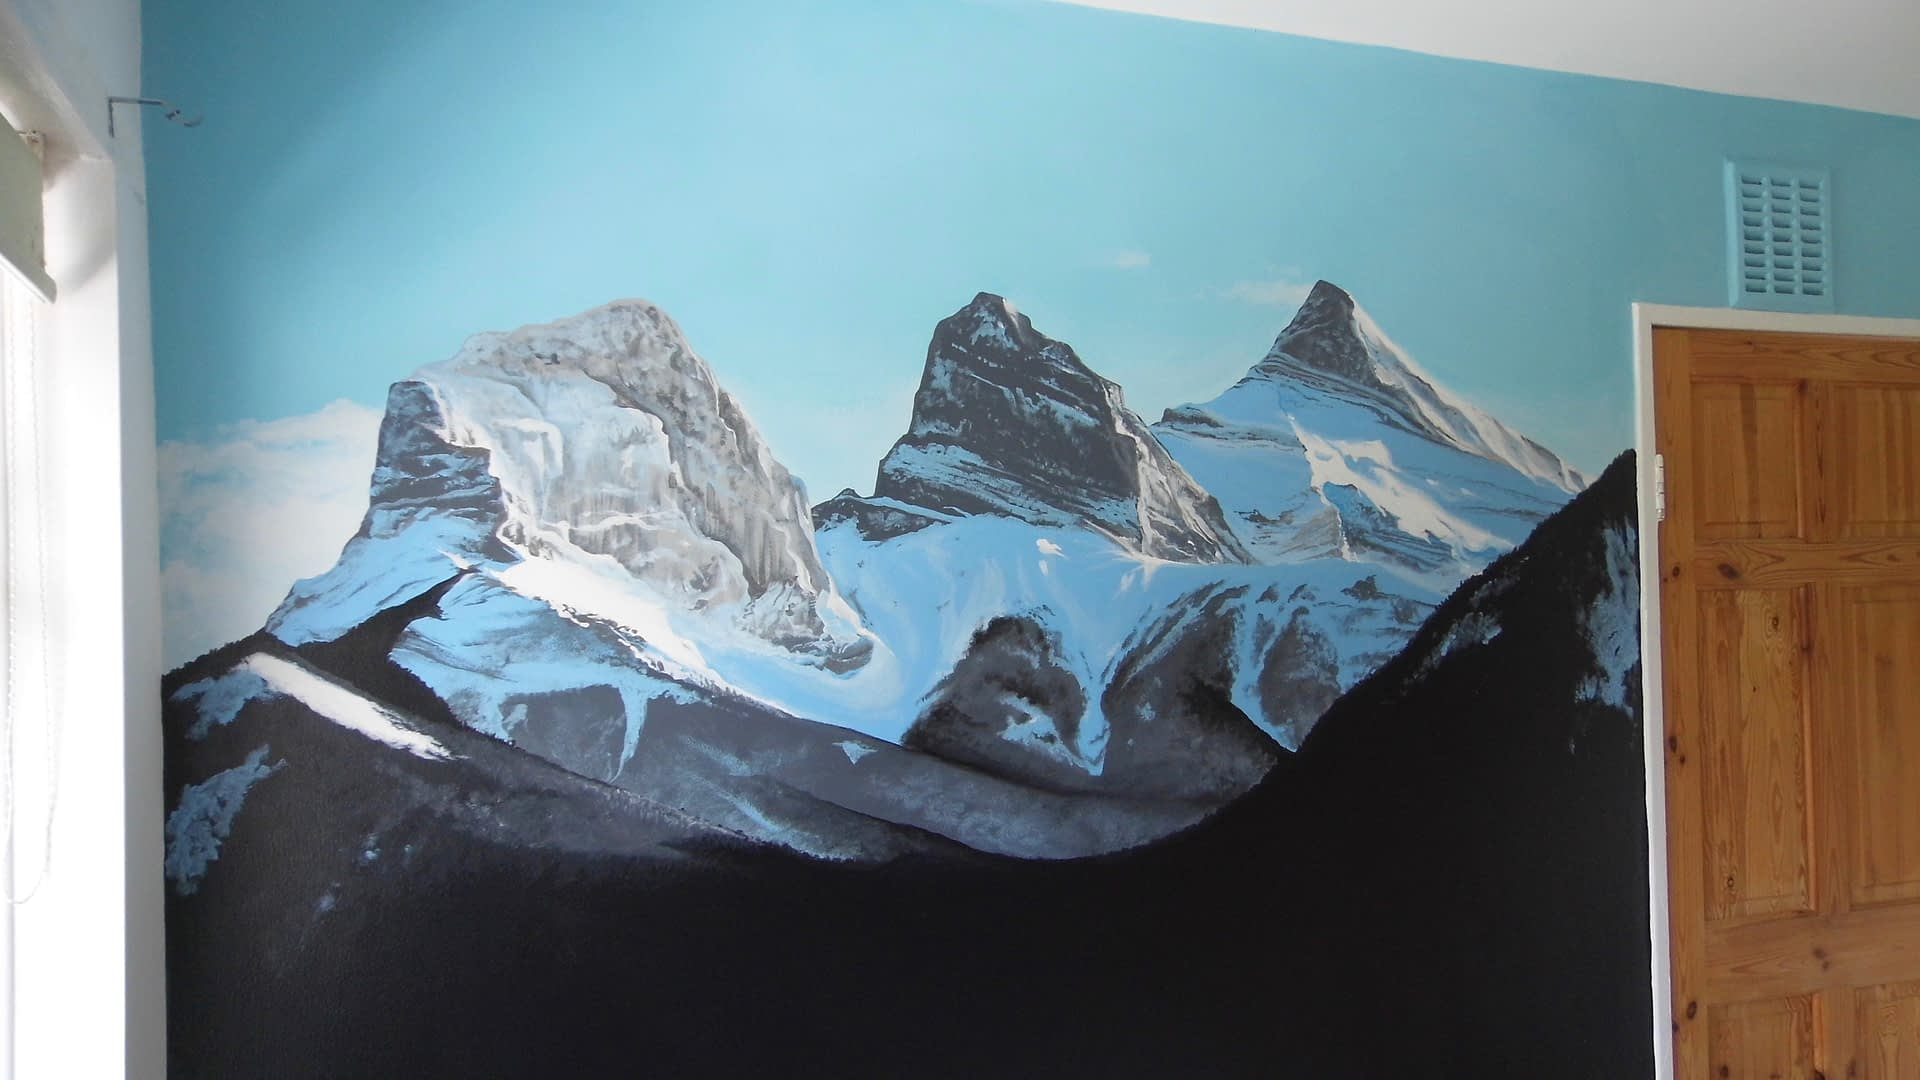 The three sisters ~ Canmore Mural